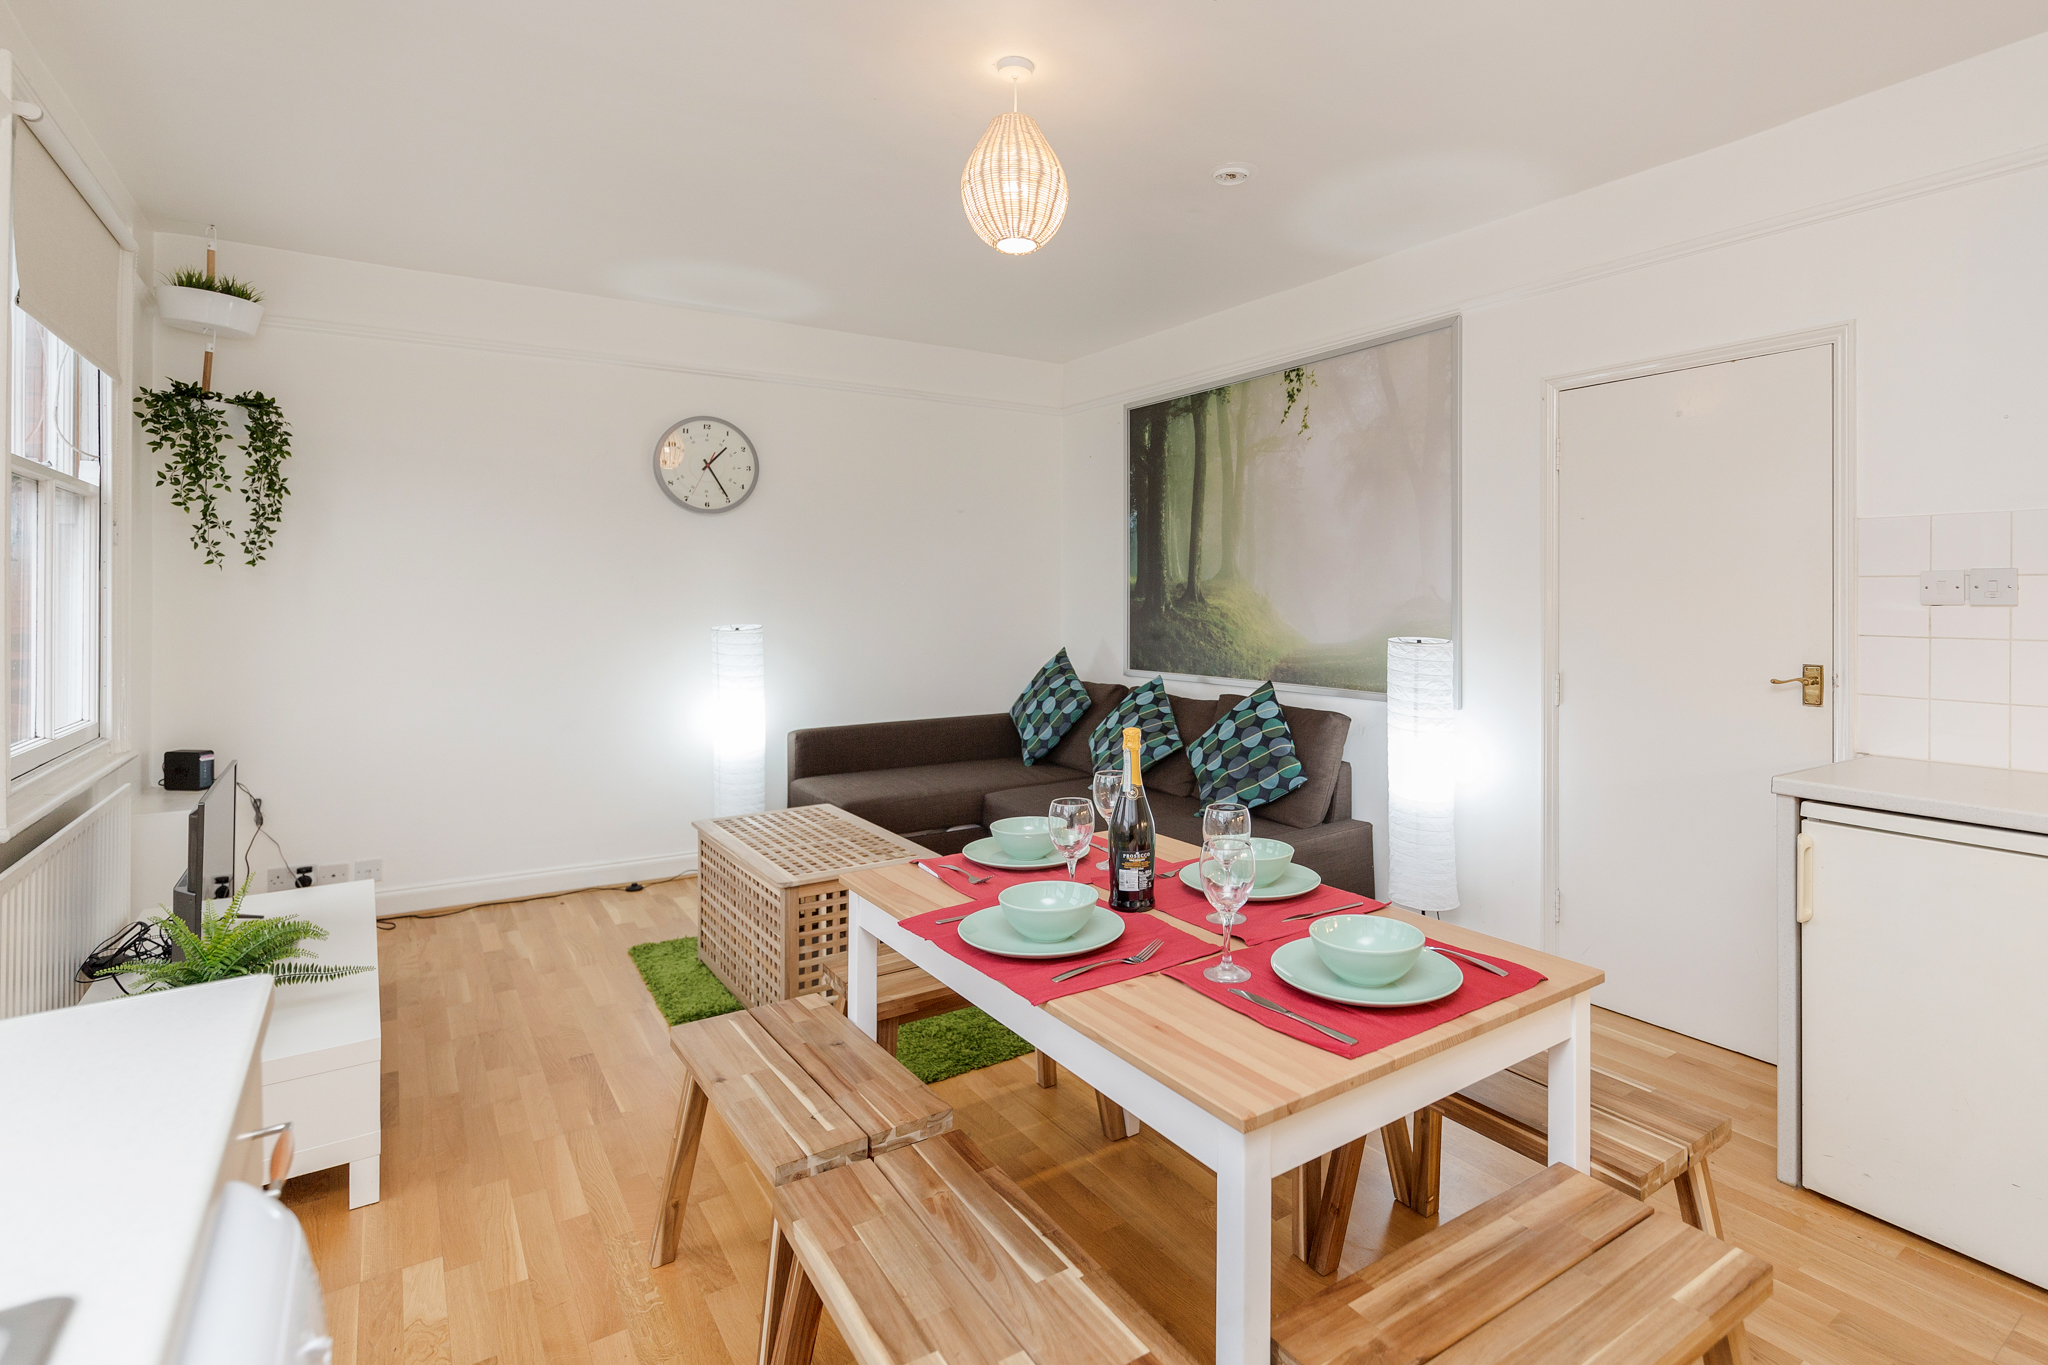 Contemporary East London Style Apartment in the heart of Brick Lane - one Minute from The Truman Brewery  photo 20247422